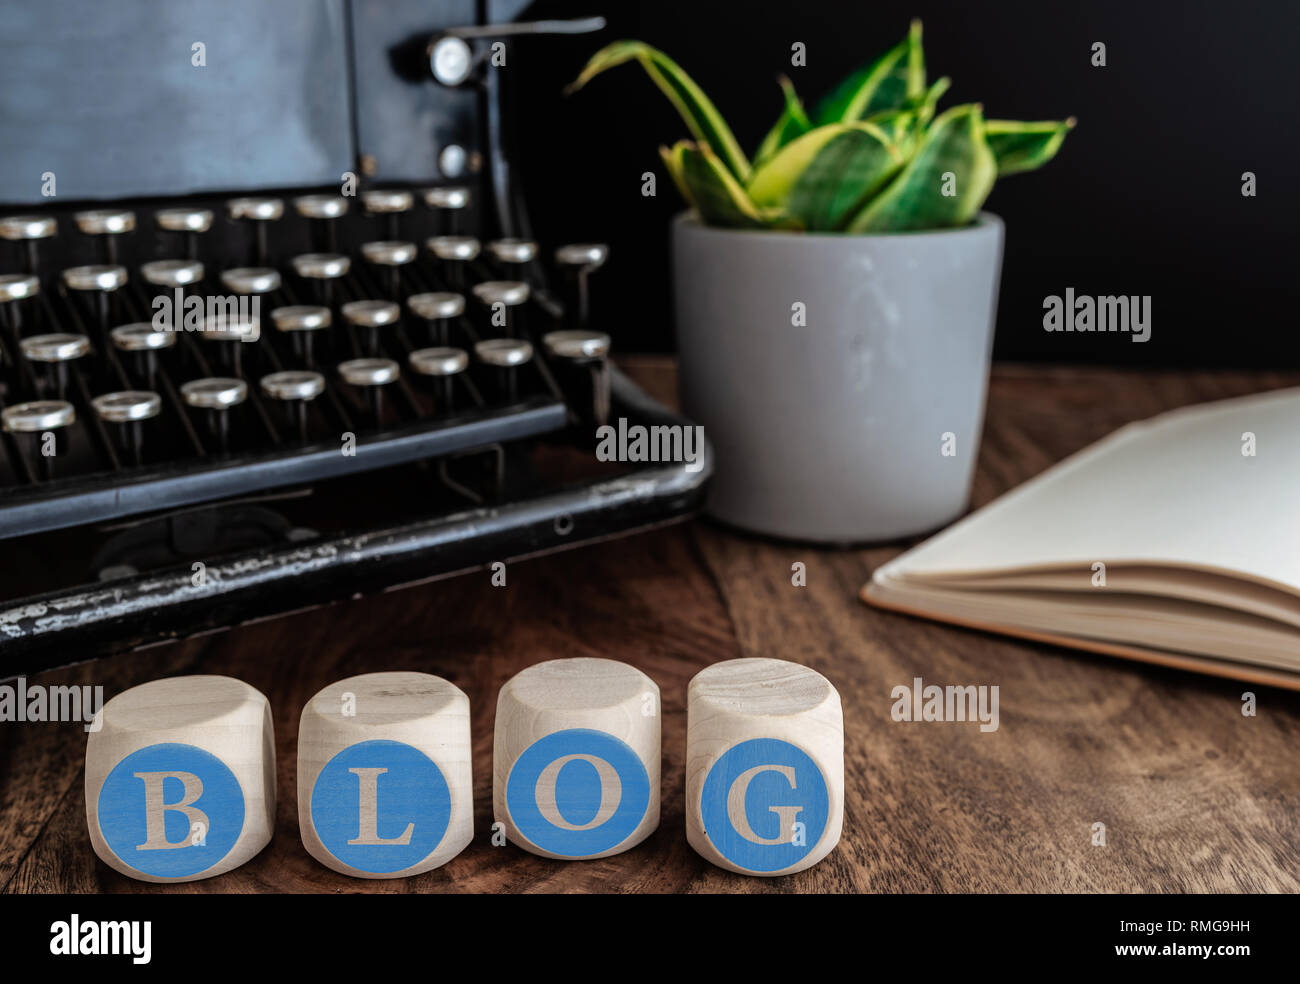 word BLOG on wooden blocks against vintage typewriter, potted plant and note pad on table - Stock Image